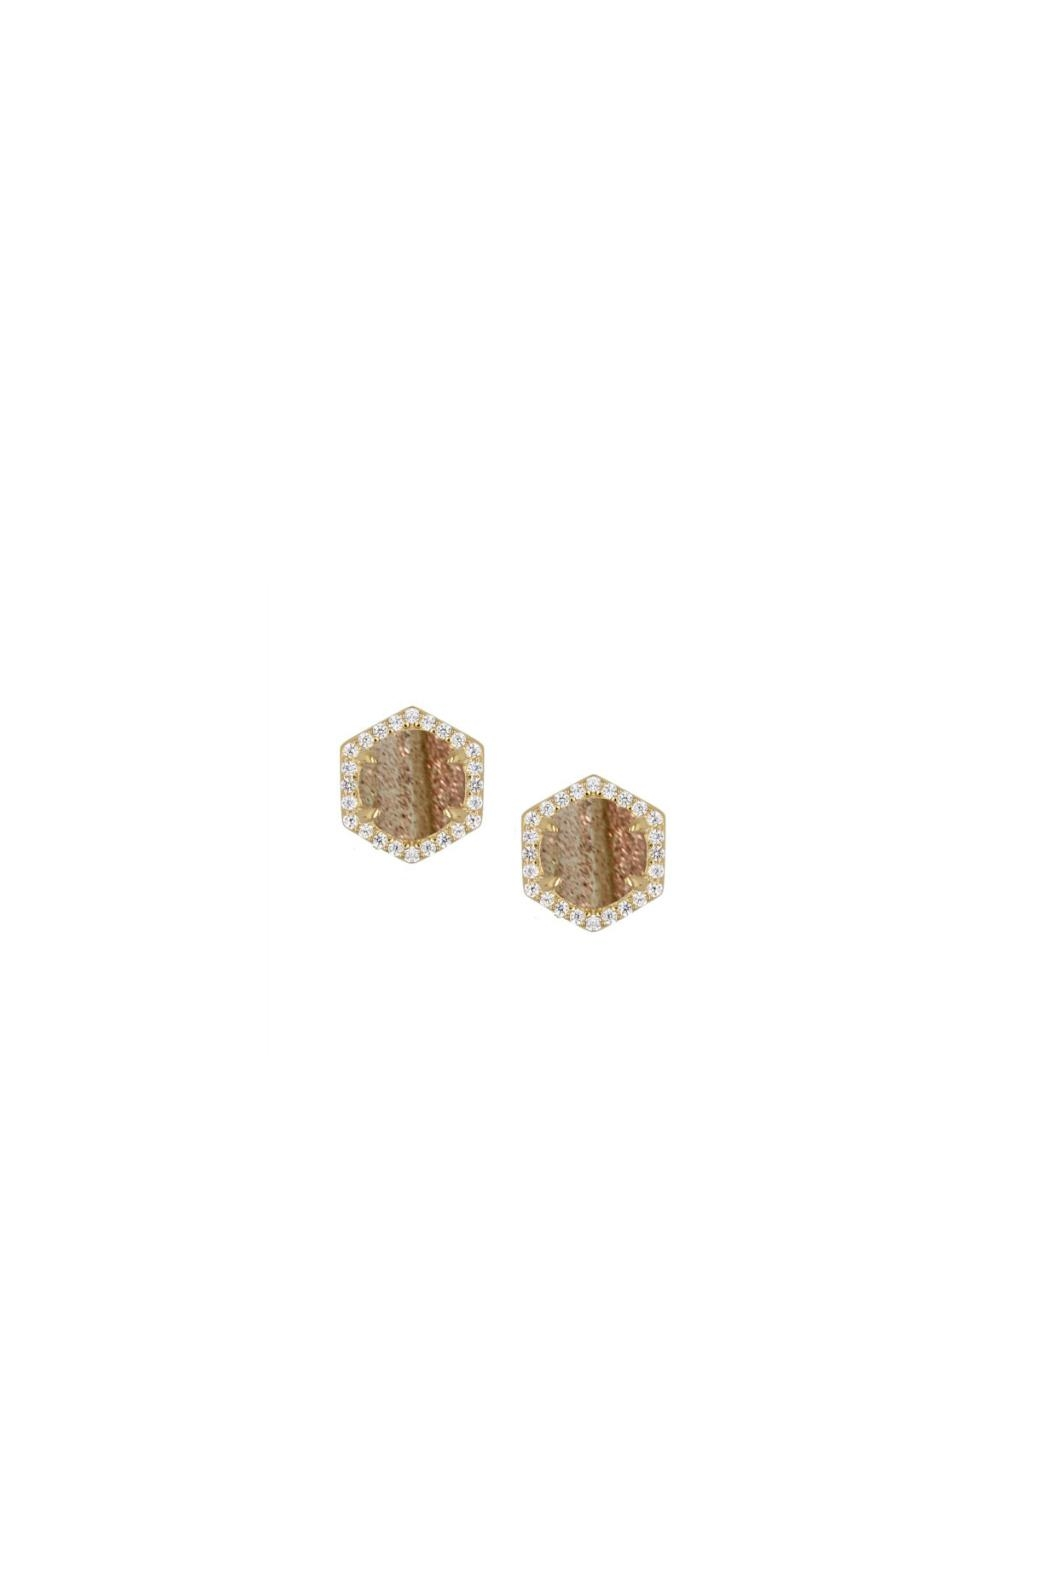 Rachael Ryen Jewelry Rutilated Quartz Stud Earrings - Front Cropped Image